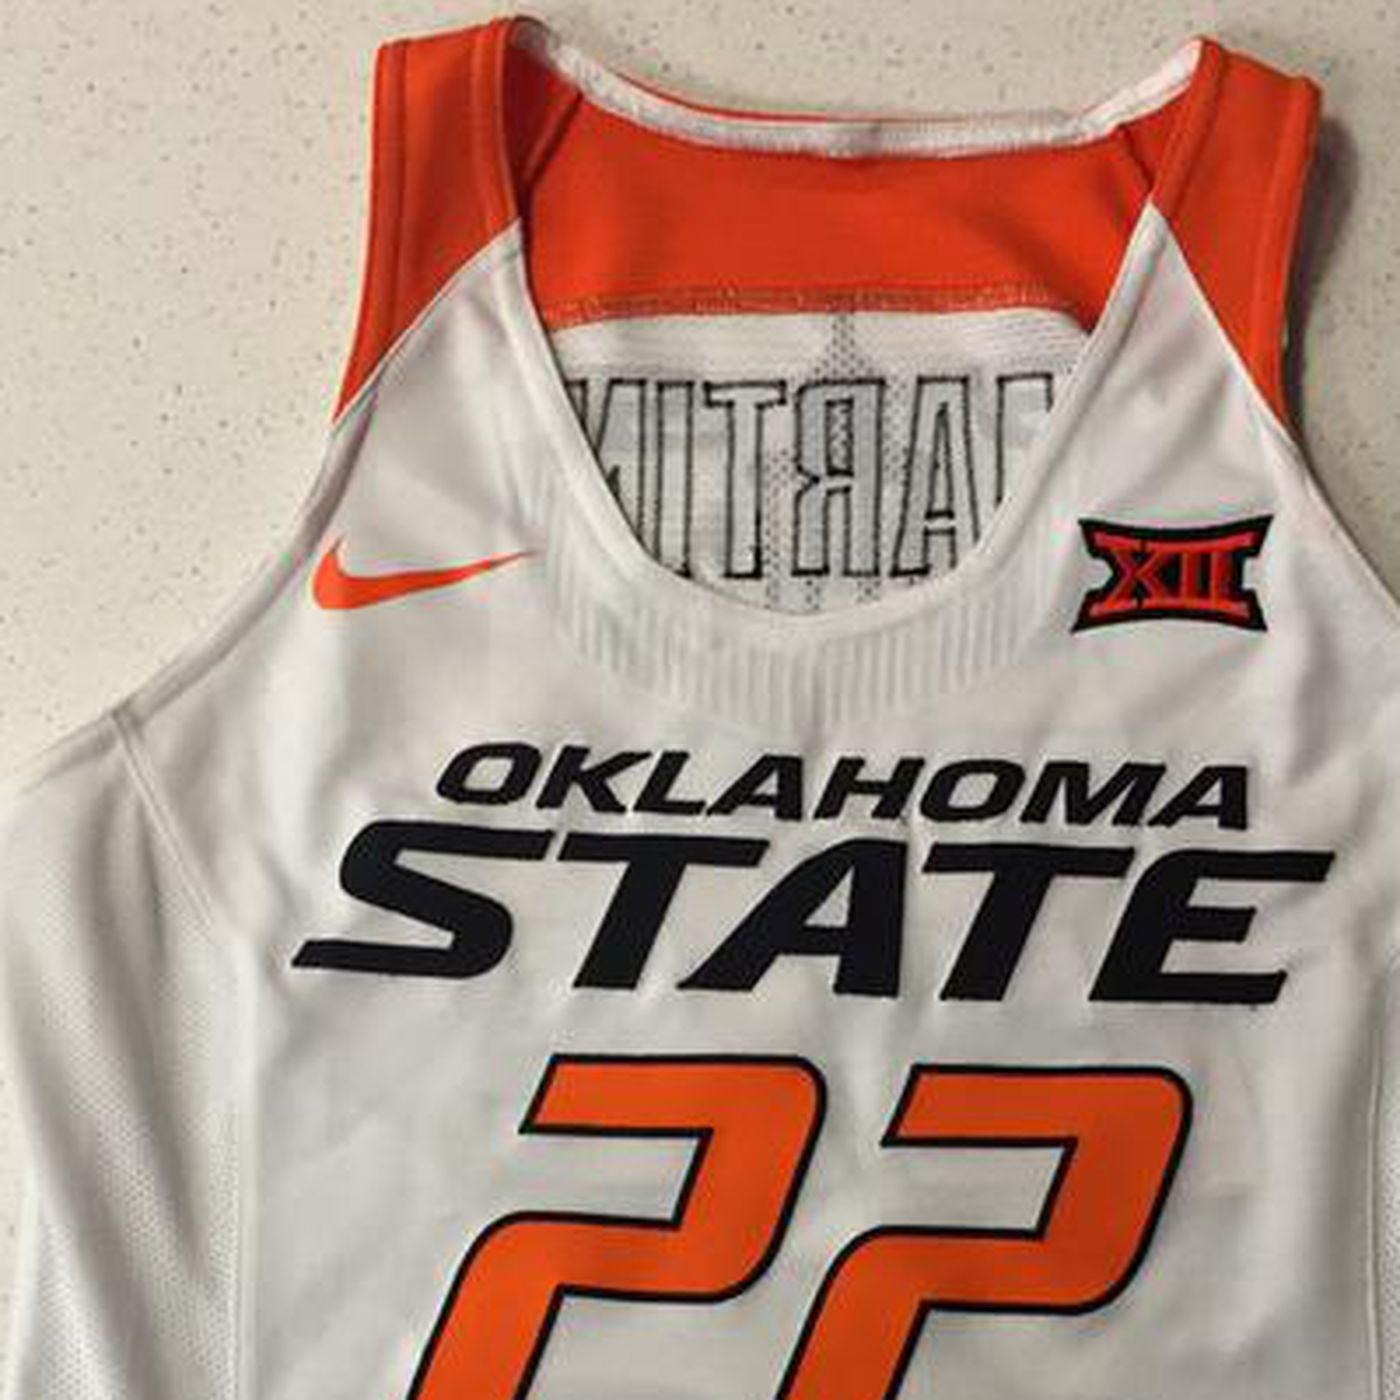 c44933f3bbbe Women s basketball gets new uniforms - Cowboys Ride For Free